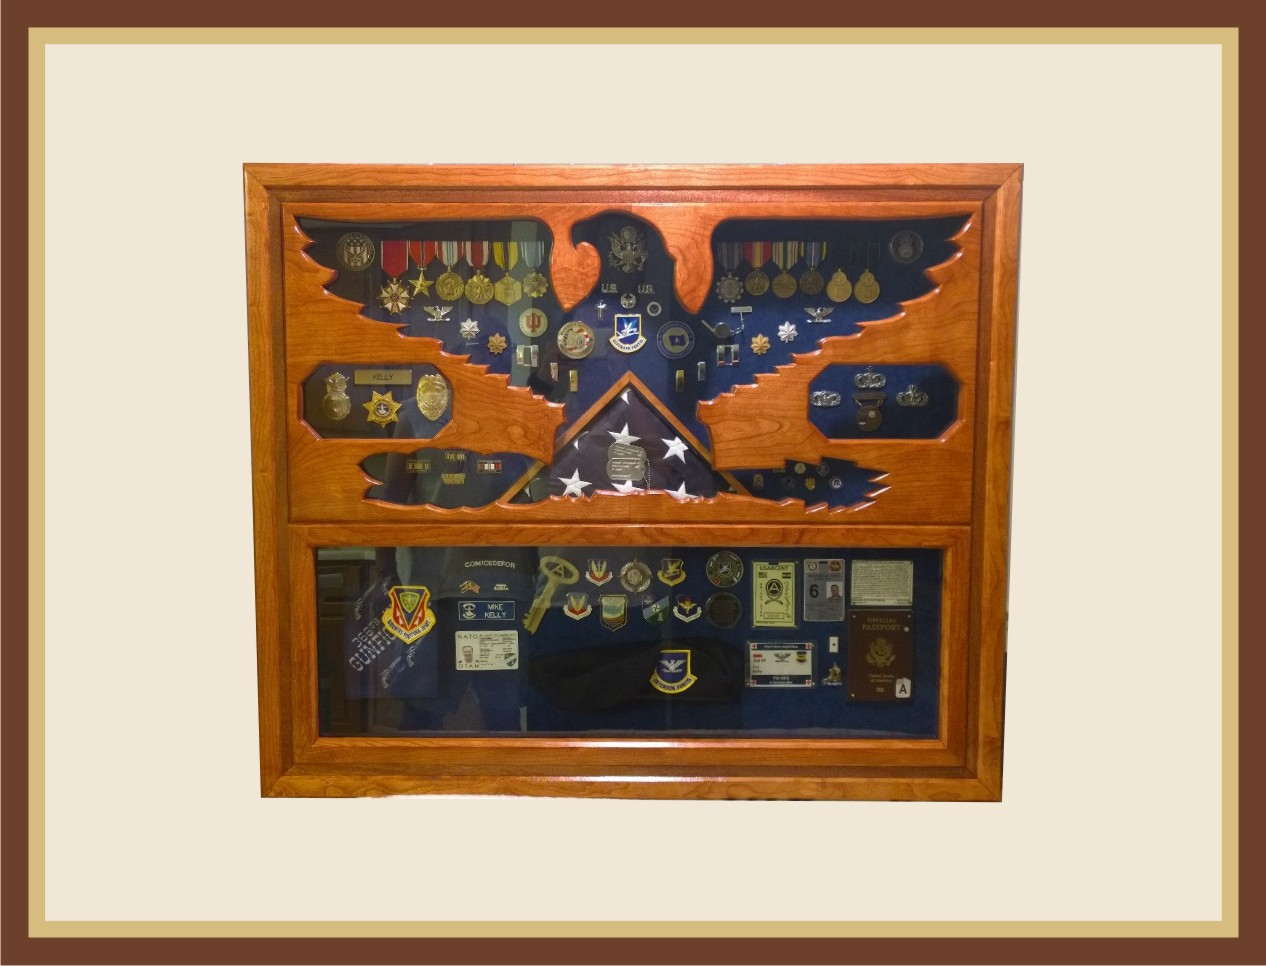 shadowboxes and custom woodworking